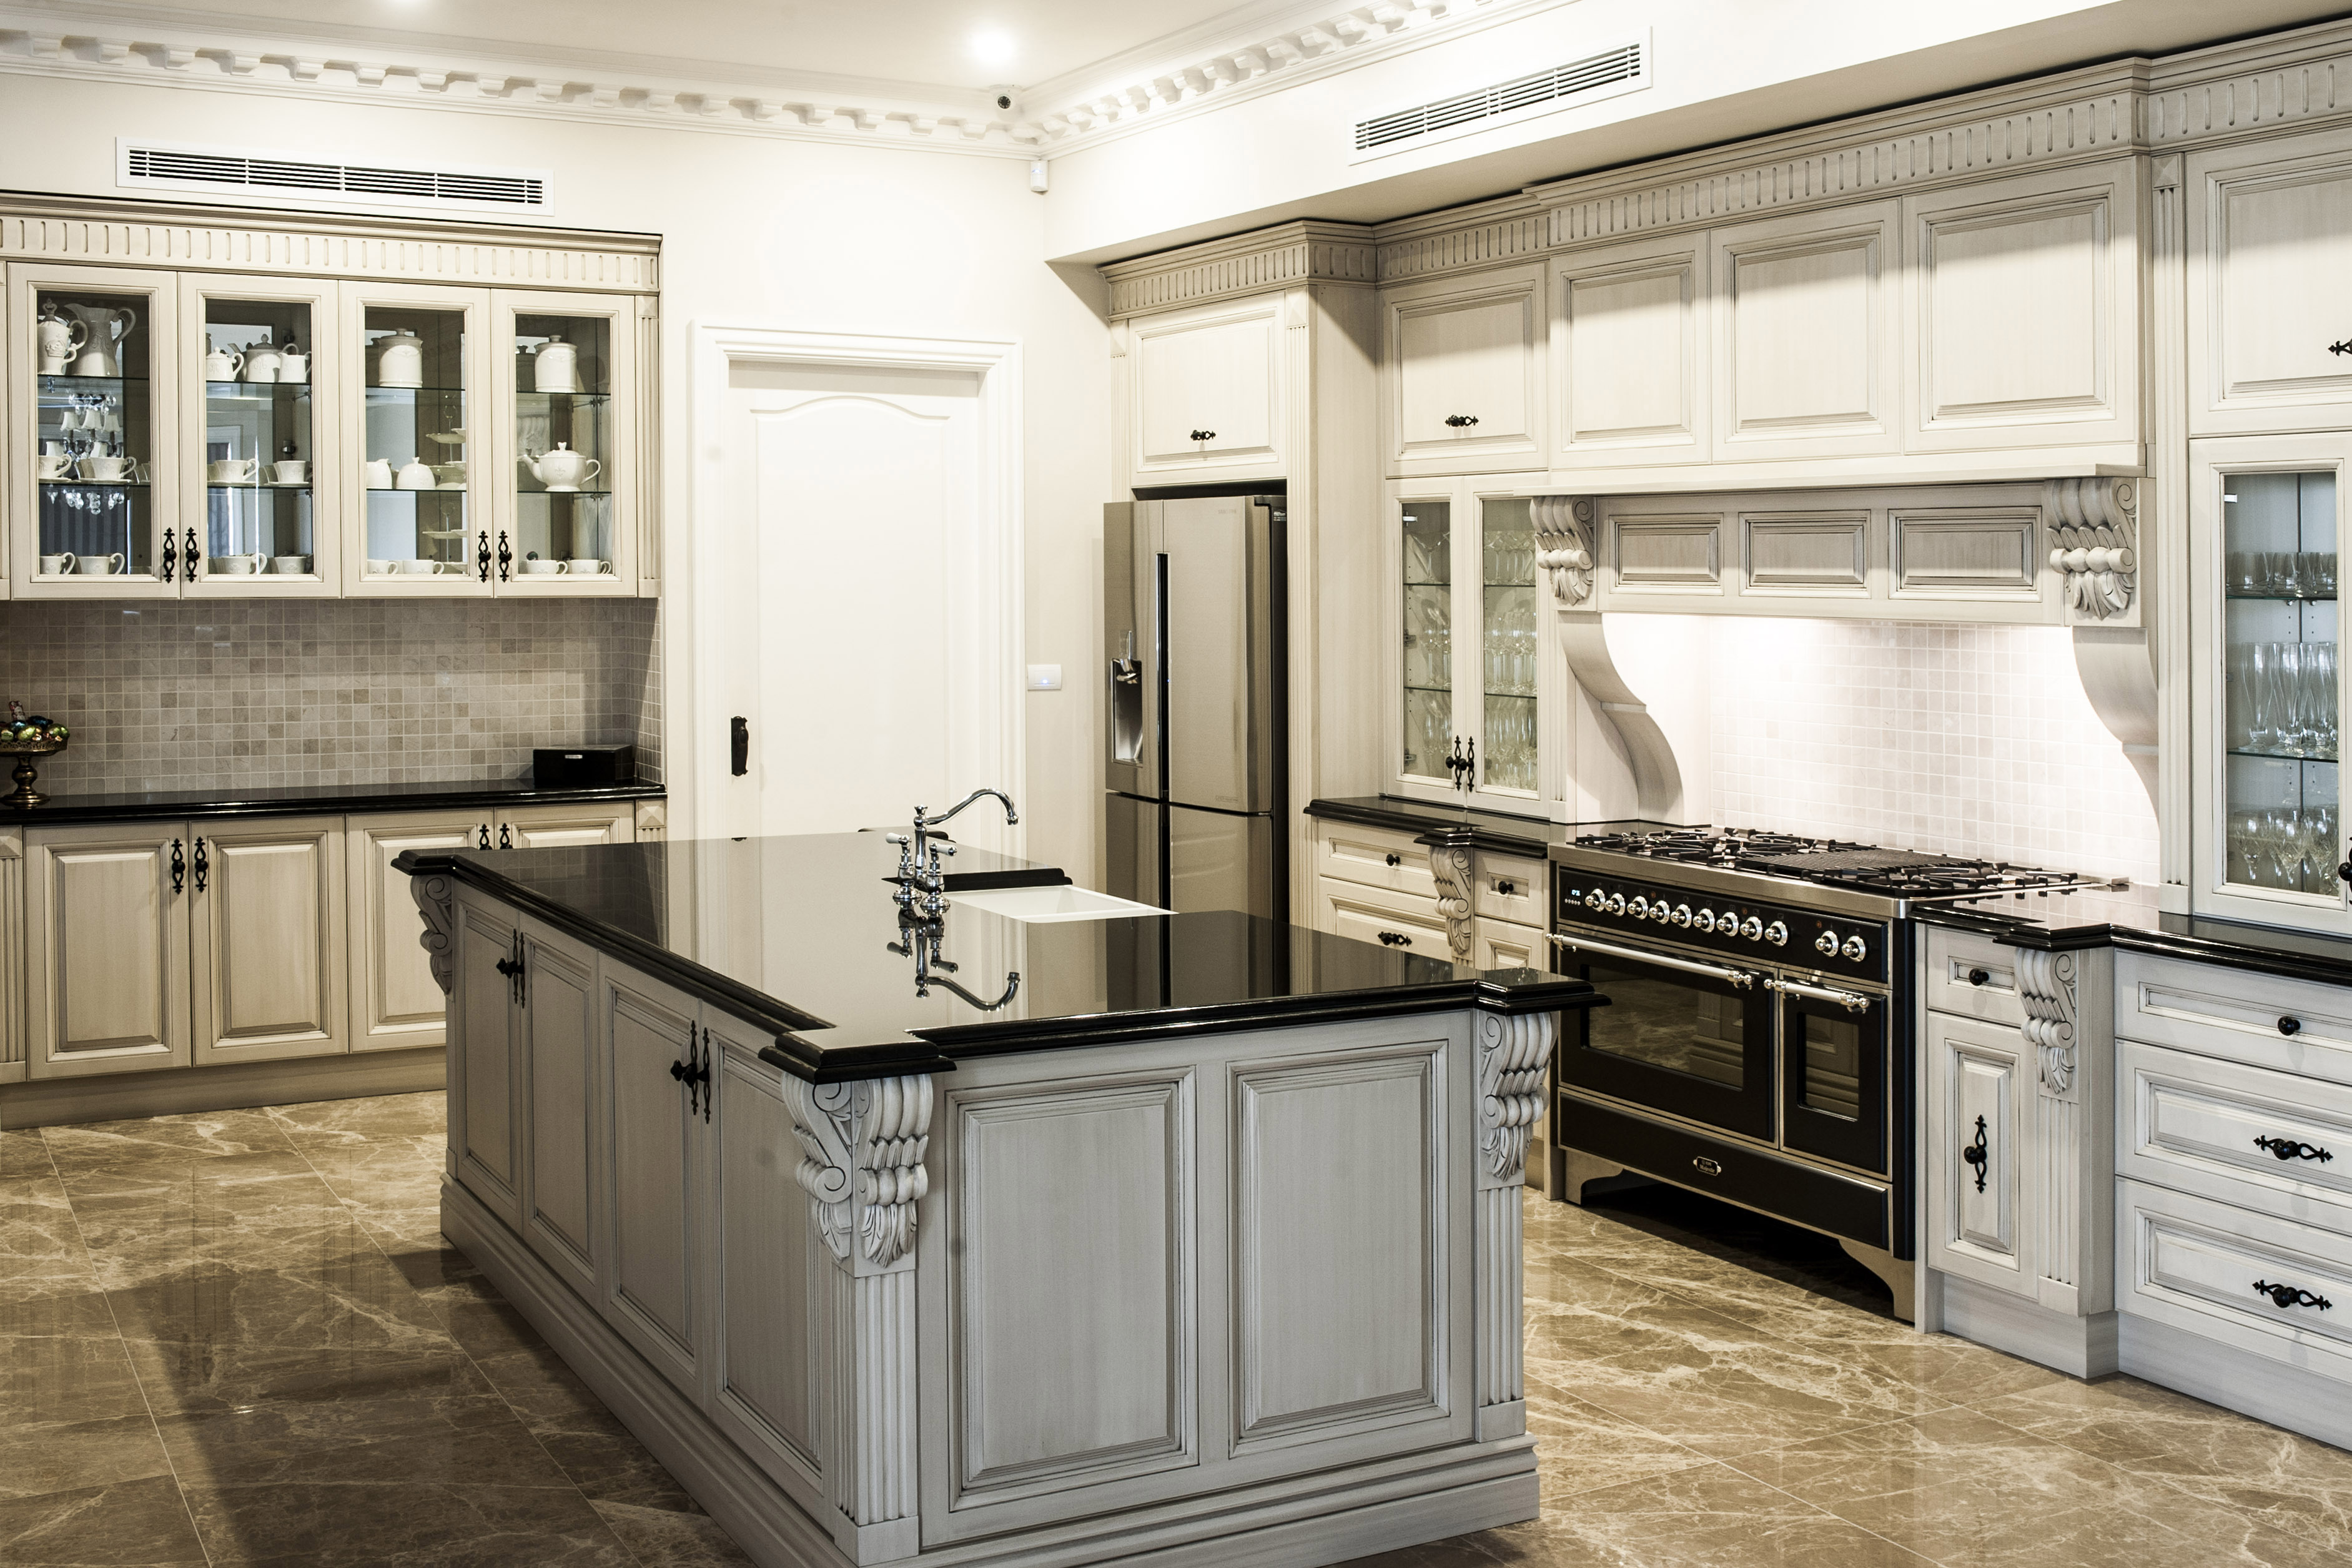 Designerspace kitchen and joinery for Serrurier lyon prix